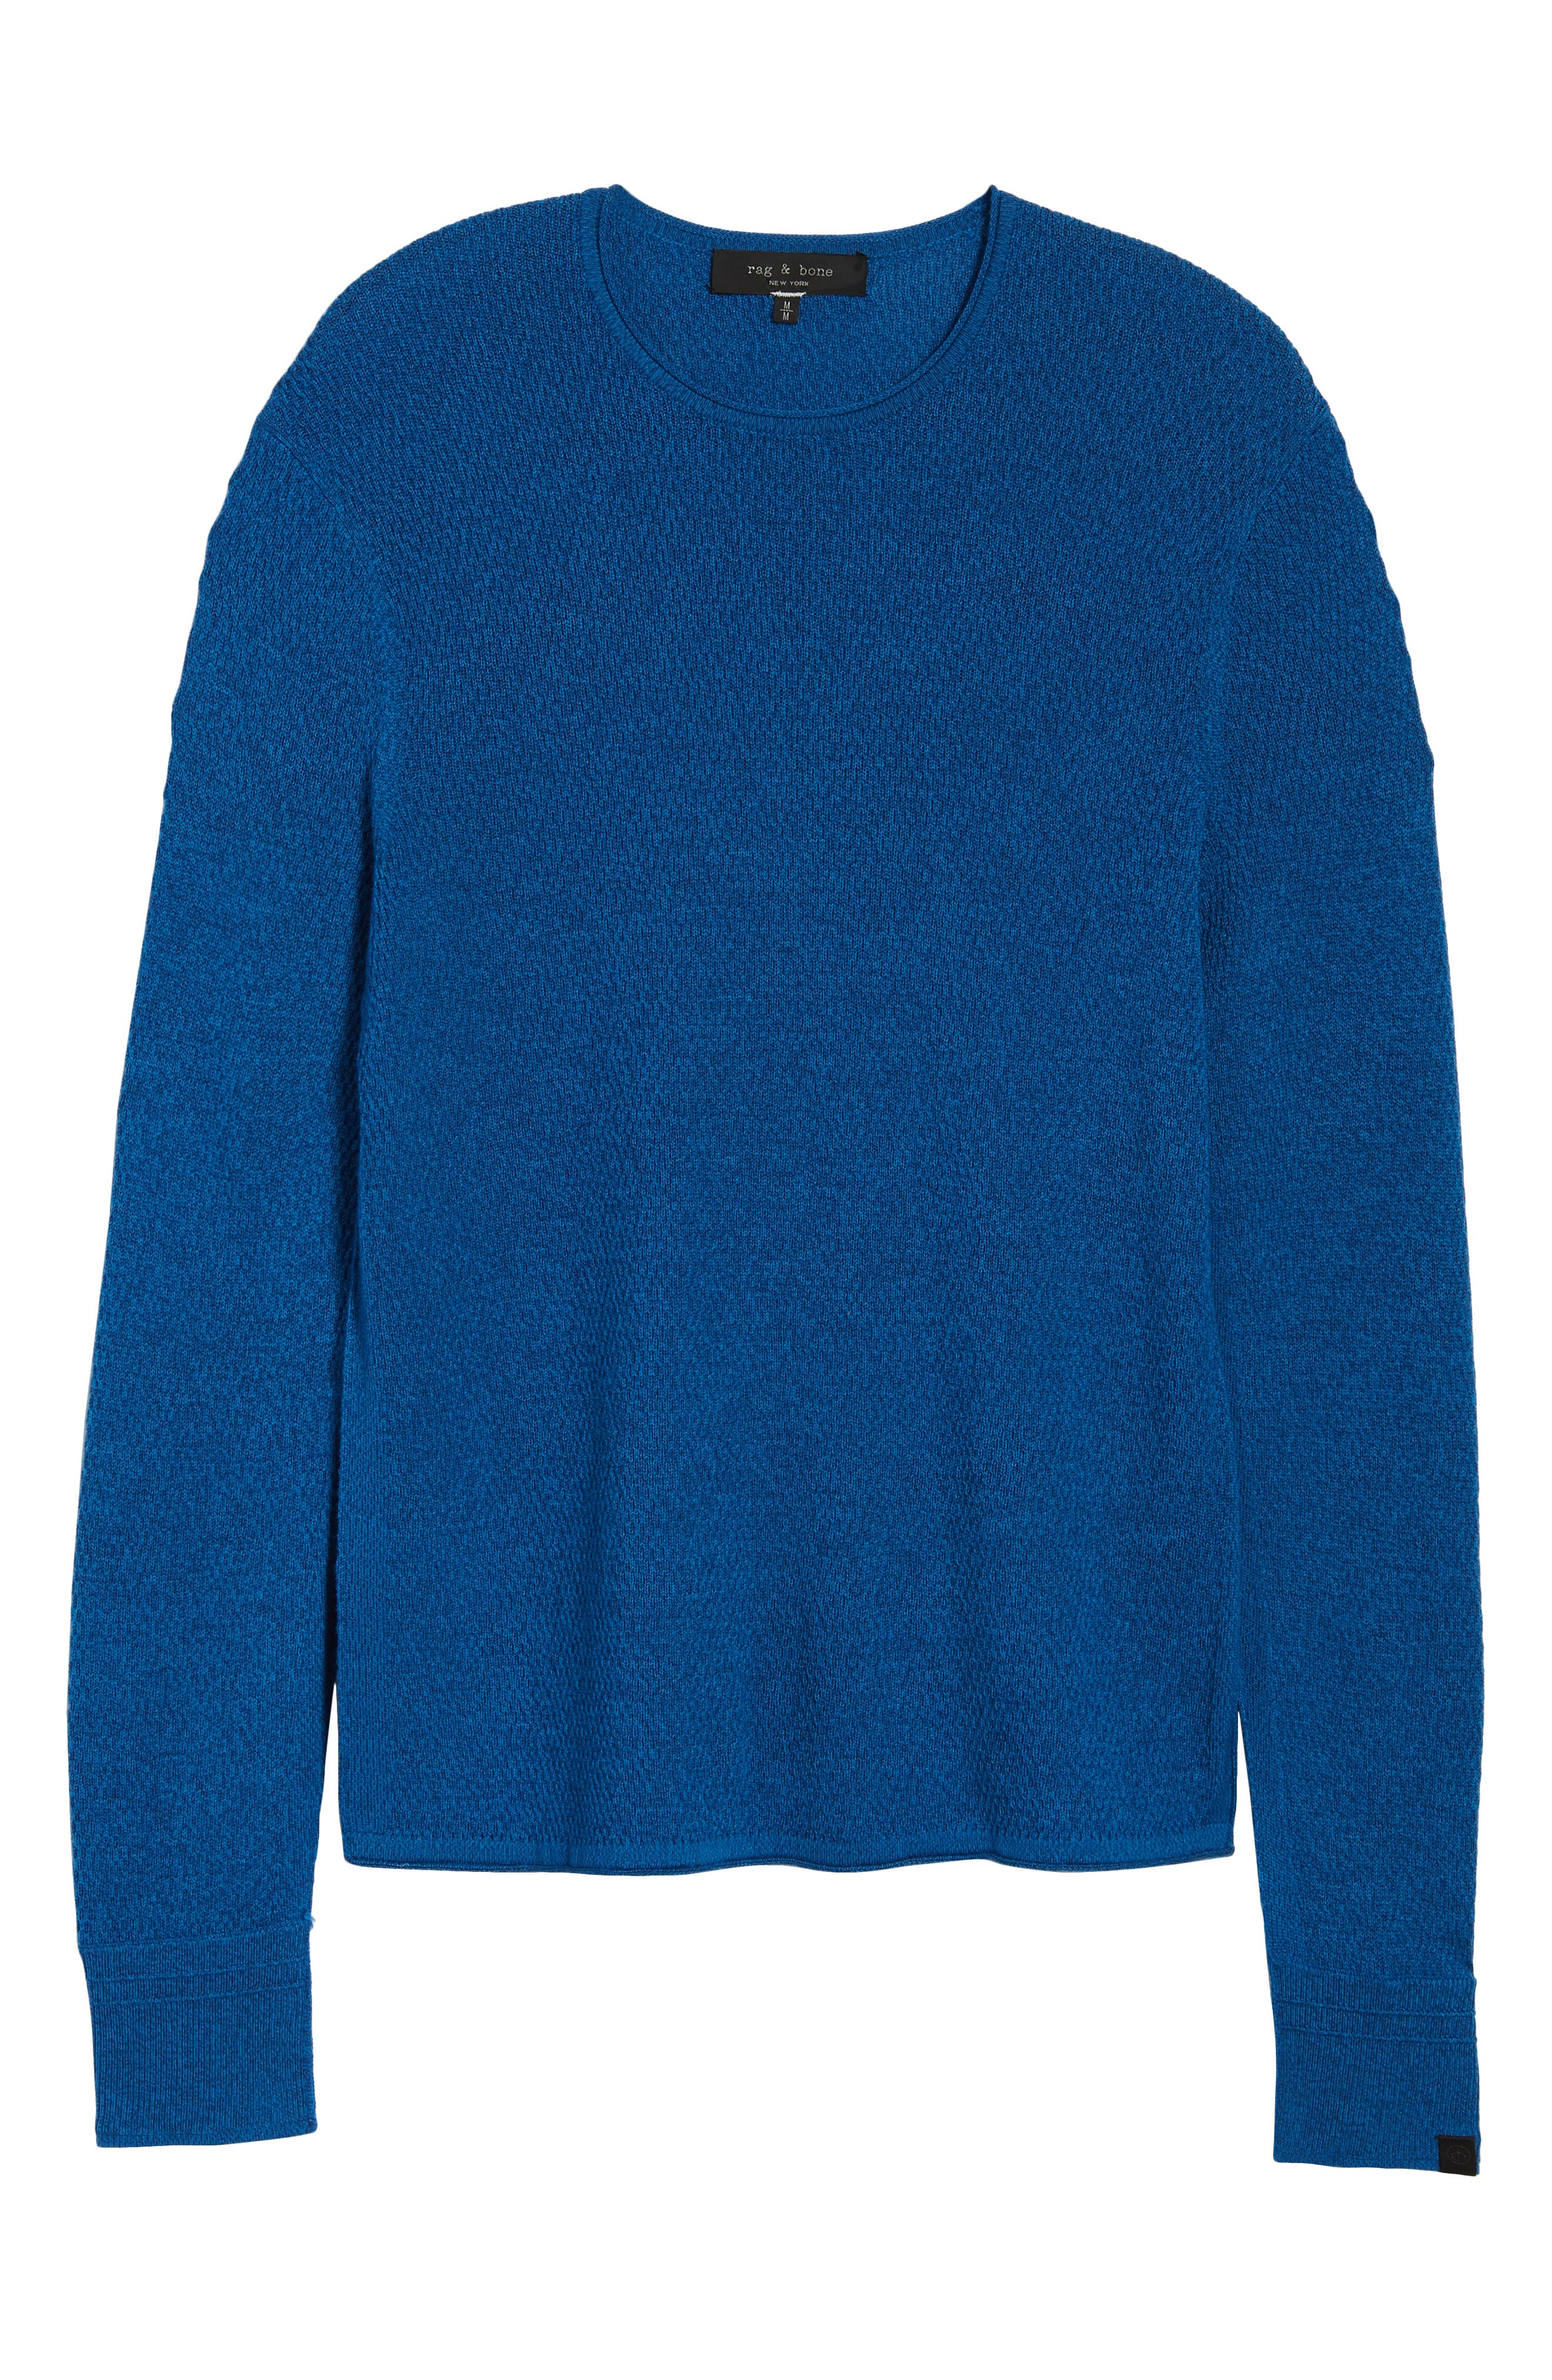 Gregory Wool Blend Crewneck Sweater,                             Alternate thumbnail 6, color,                             Bright Blue